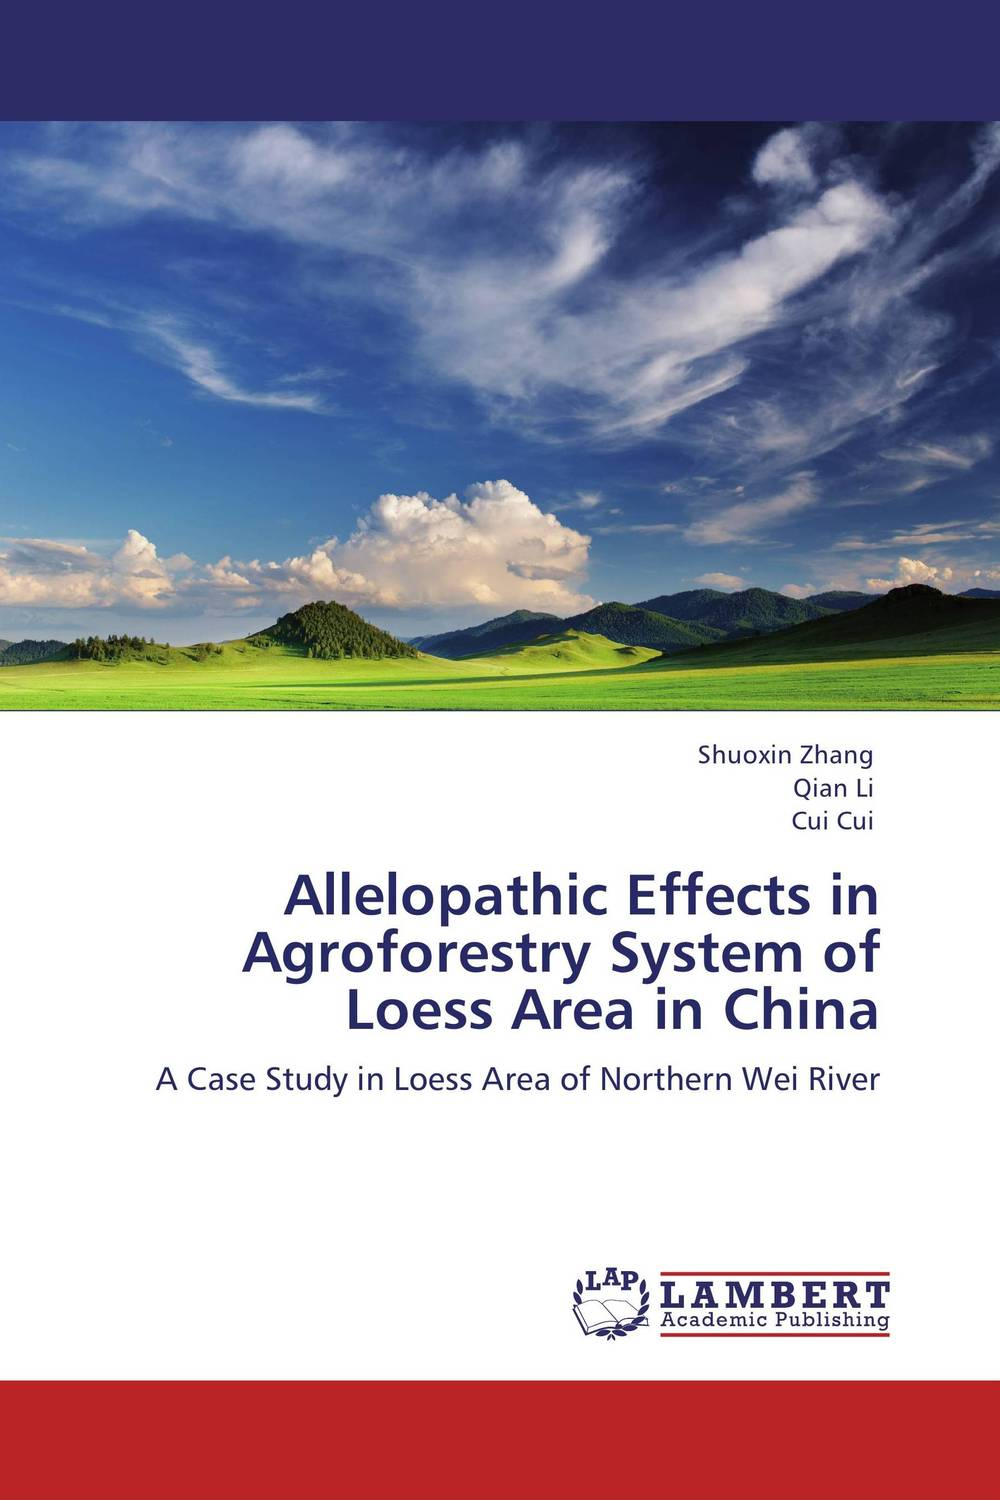 Allelopathic Effects in Agroforestry System of Loess Area in China role of women in agroforestry practices management